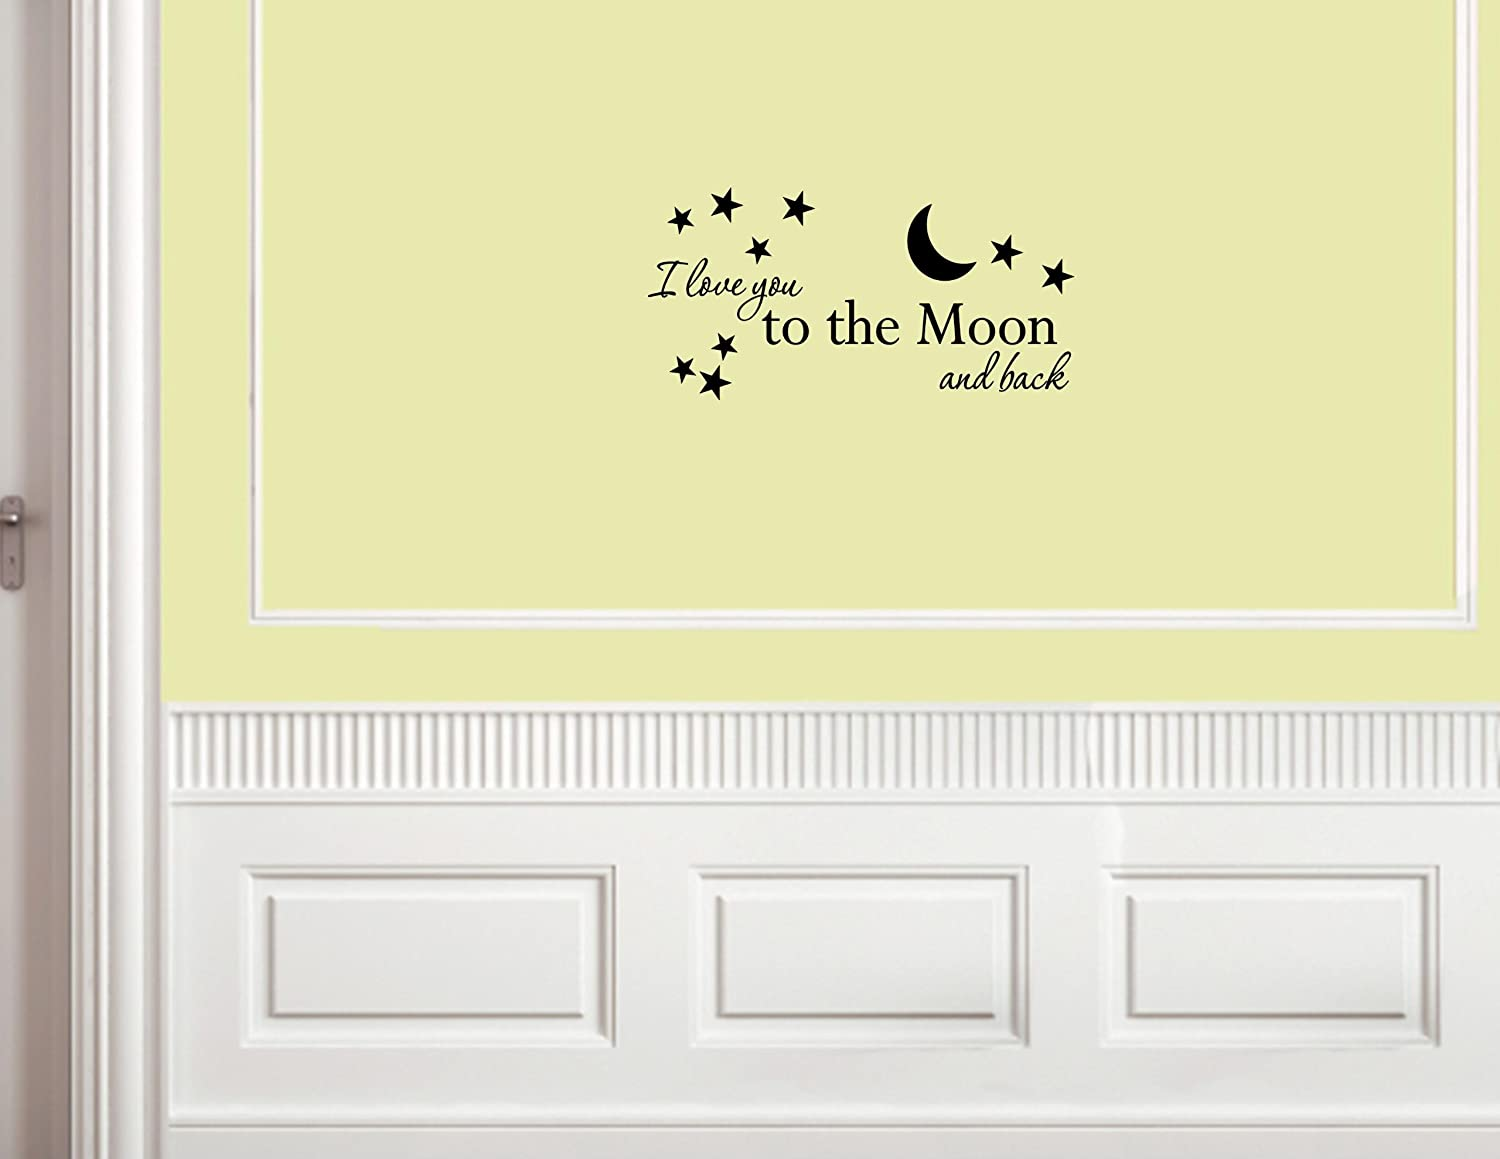 amazon com i love you to the moon and back vinyl wall decals amazon com i love you to the moon and back vinyl wall decals quotes sayings home decor home kitchen